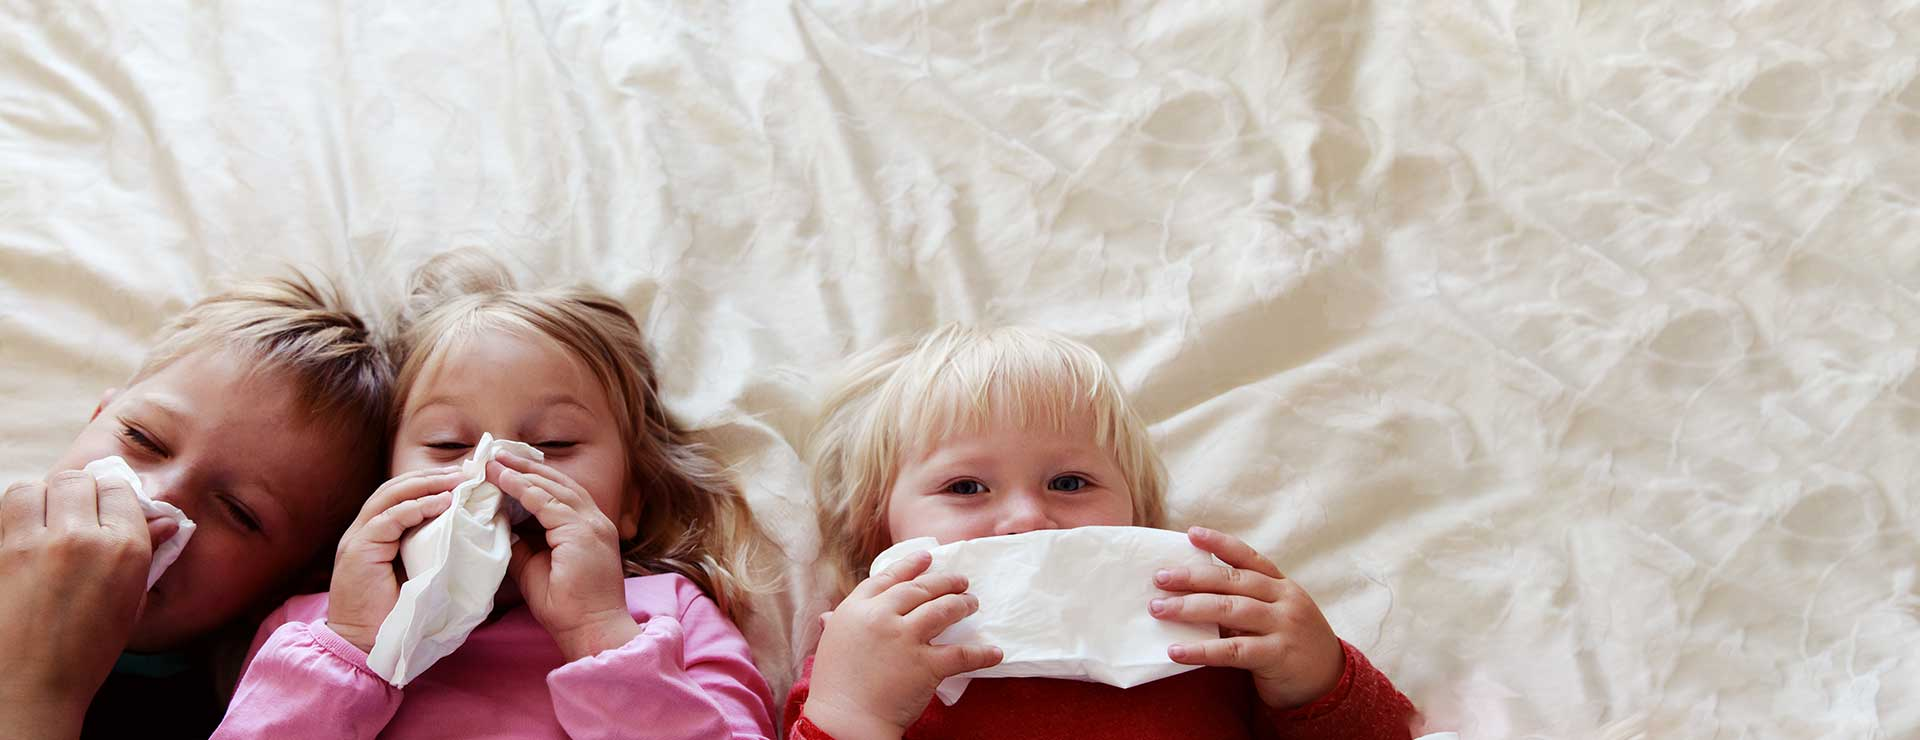 Children blow their noses, sick in bed.